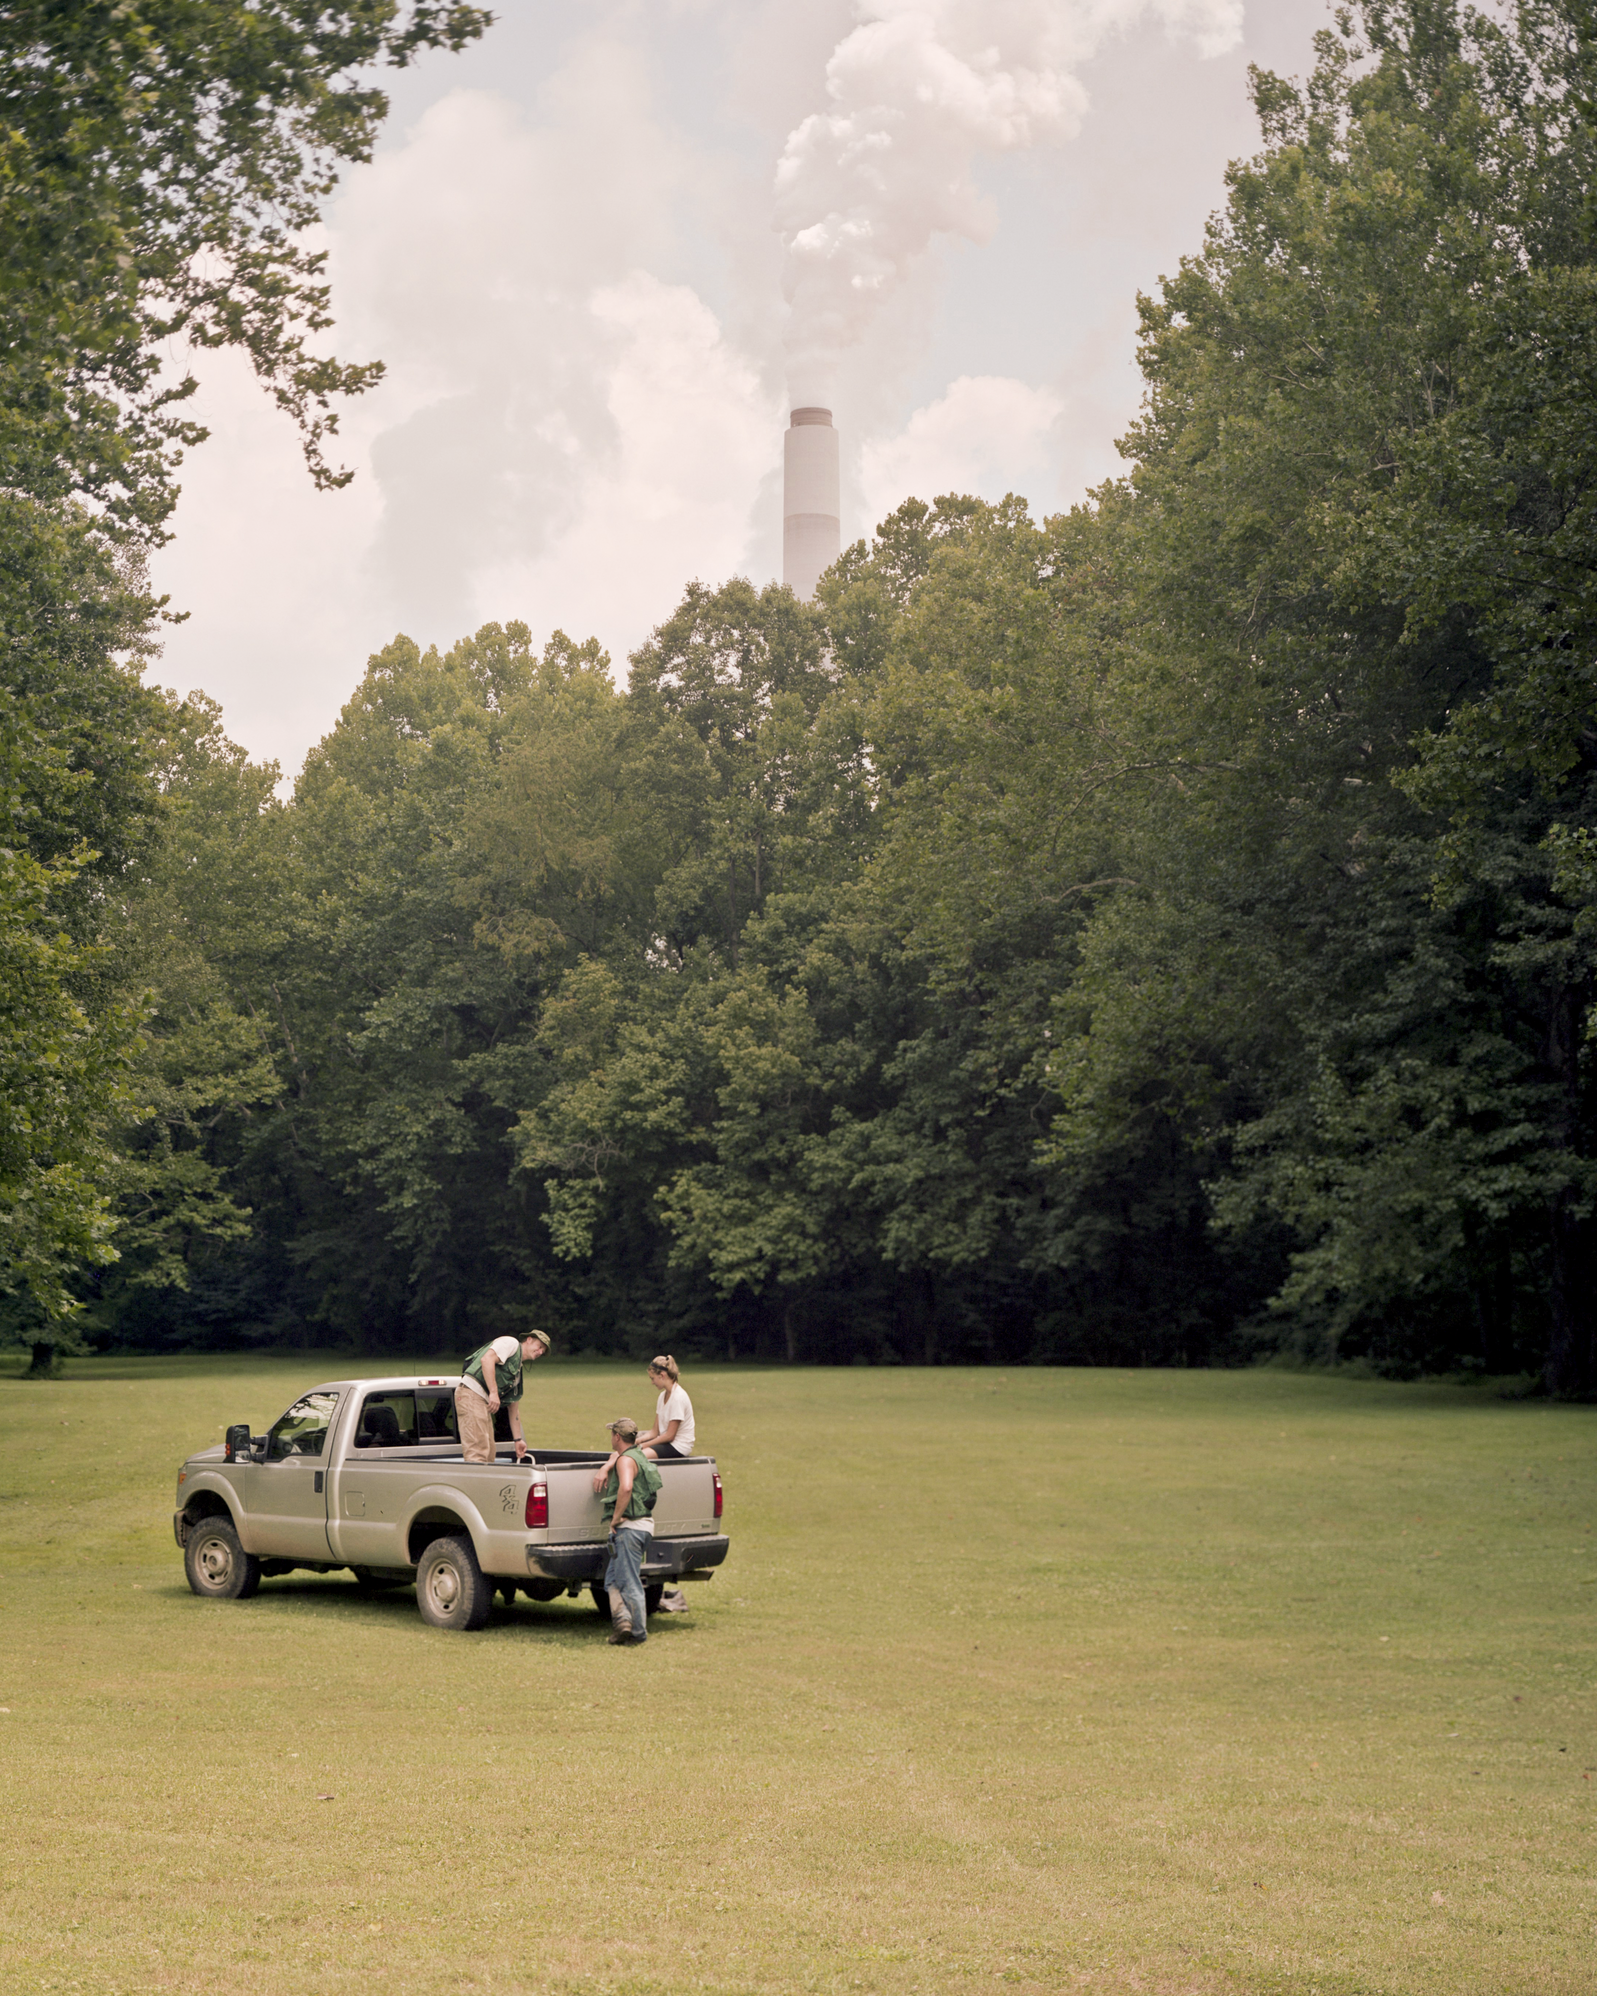 A 900-foot stack at West Virginia's E. Amos coal-fired power plant looms behind park staff. Photograph by Daniel Shea